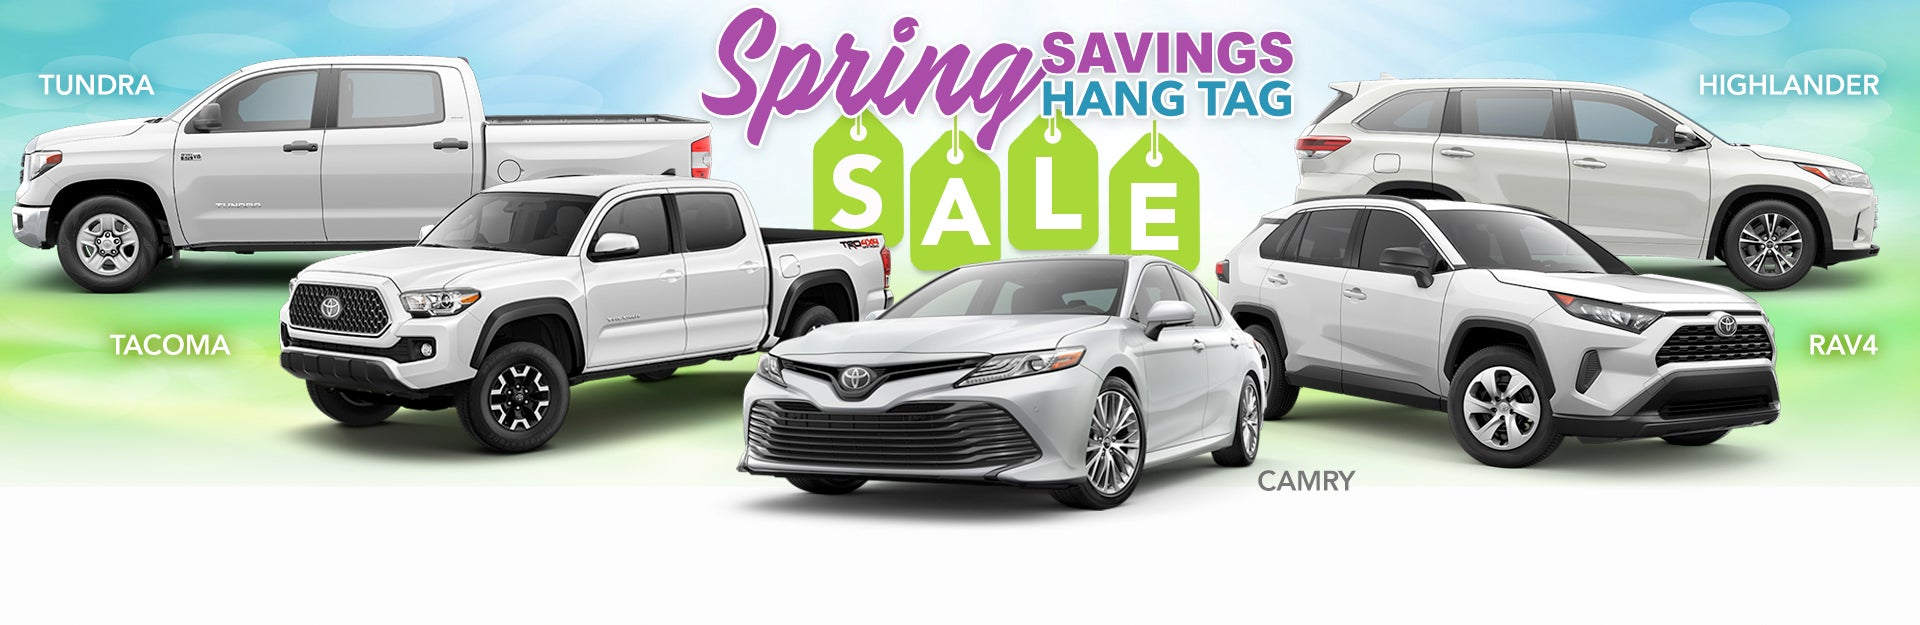 2019 Toyota Spring Savings At Vancouver